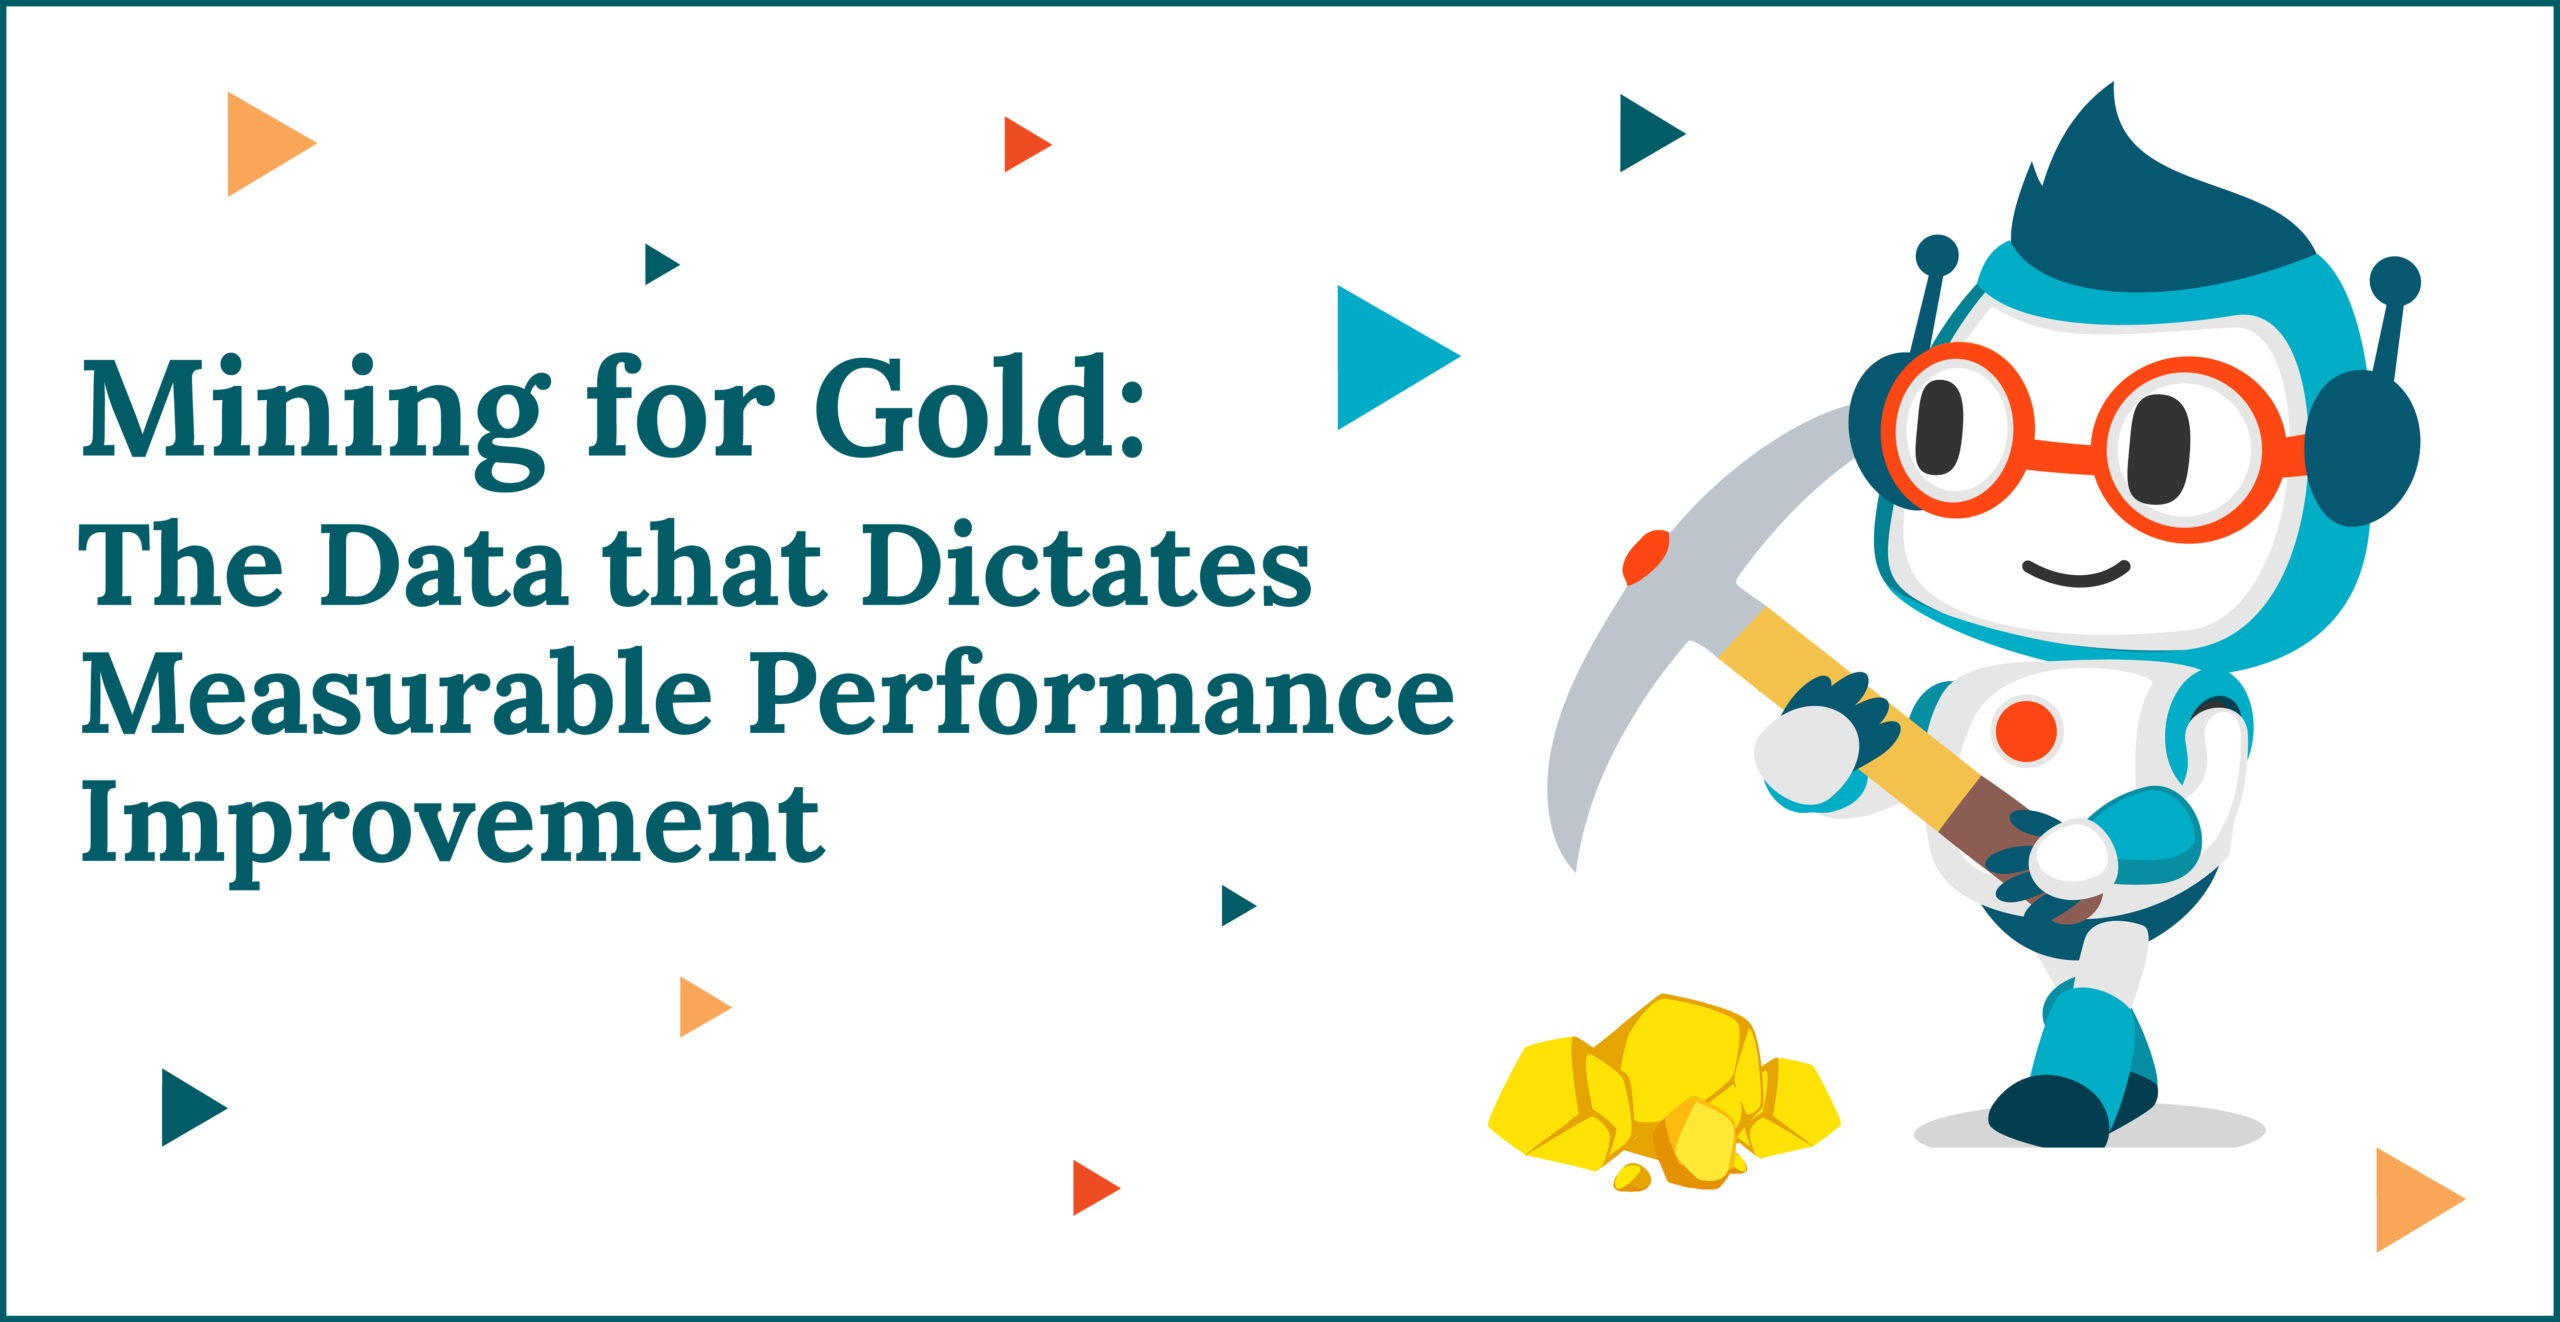 Mining for Gold: The Data that Dictates Measurable Performance Improvement